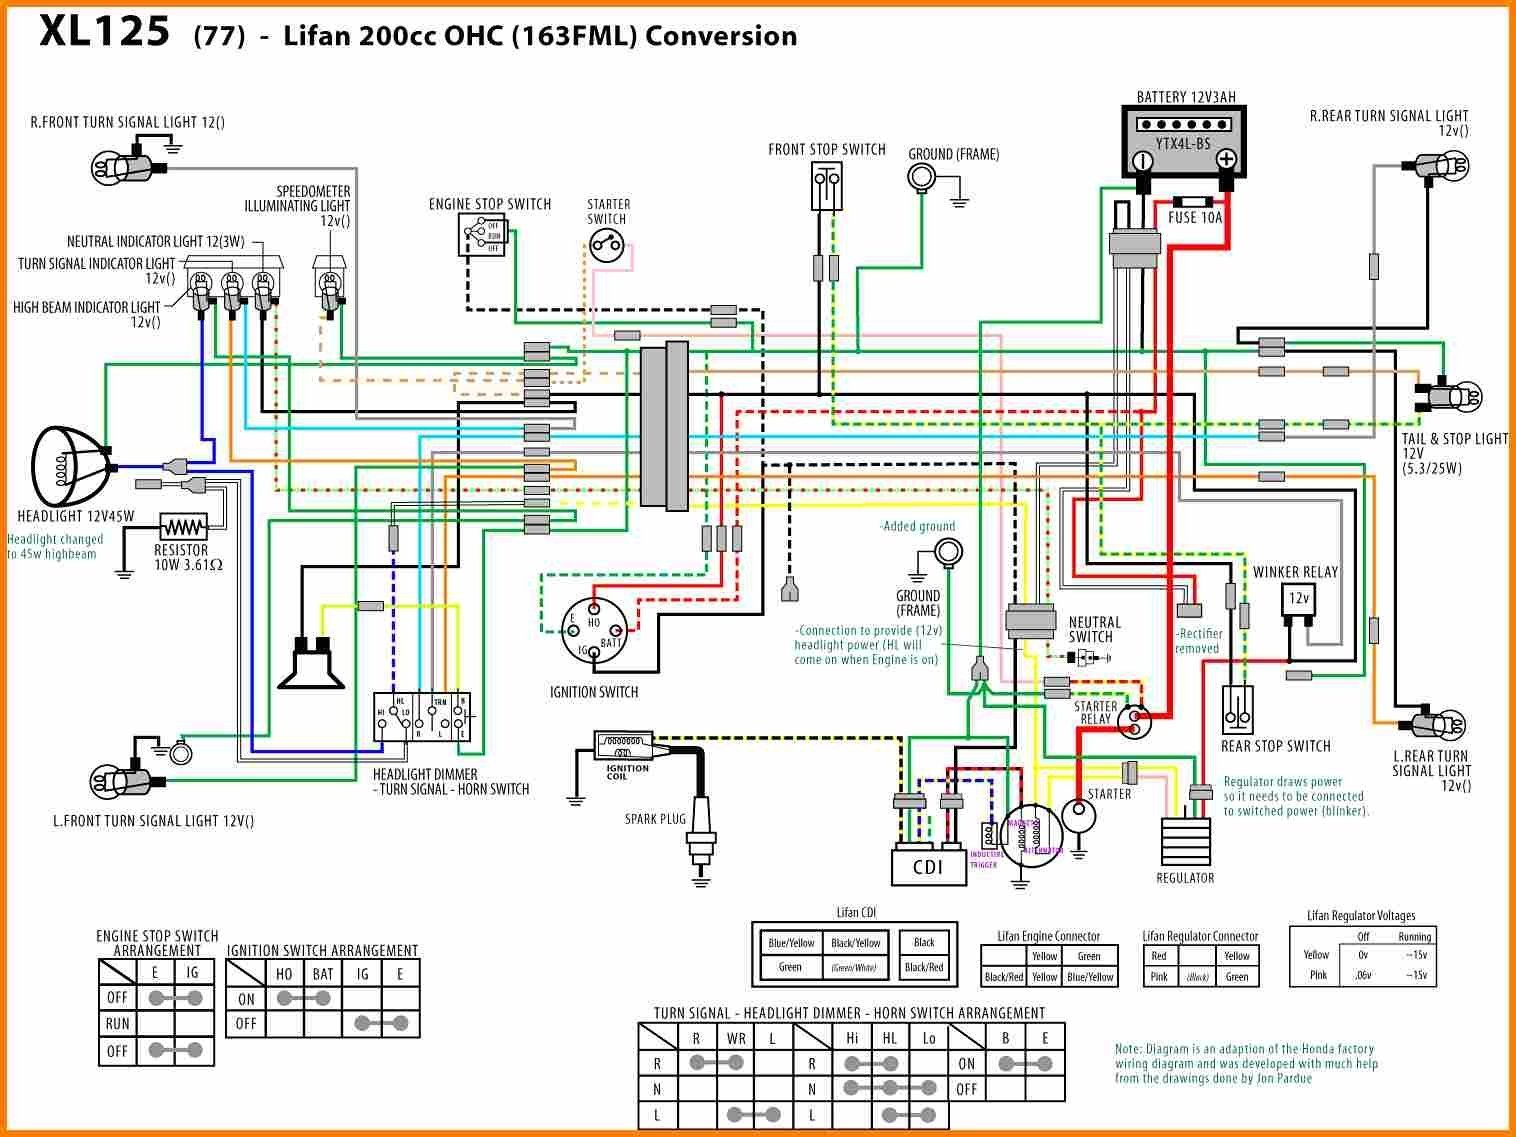 Lifan 110cc Engine Diagram Lifan 125cc Wiring Diagram Wiring Pertaining To Lifan 125 Wiring Di Motorcycle Wiring Electrical Diagram Electrical Wiring Diagram